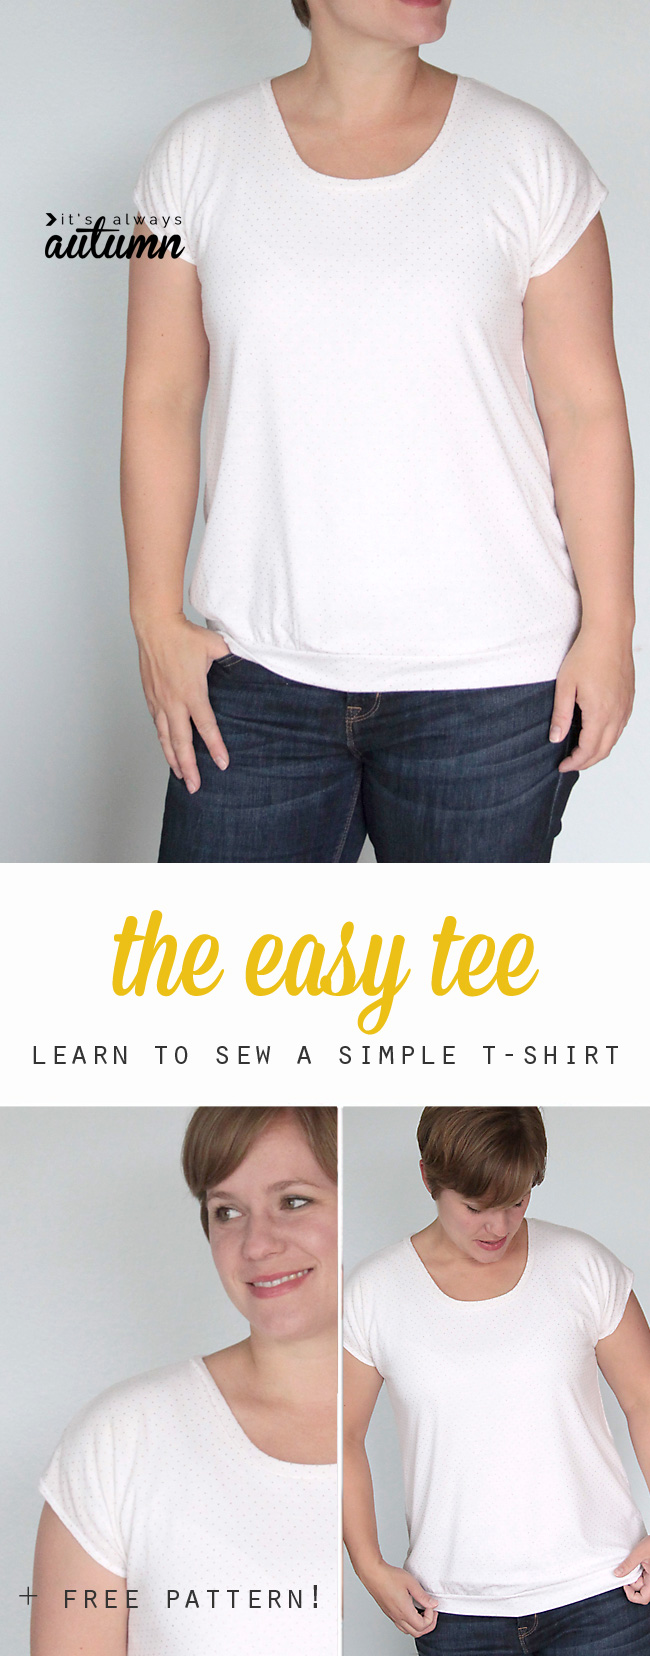 learn the simplest way to make a women's tee with this easy to follow sewing tutorial - use the free pattern included or learn to make your own!